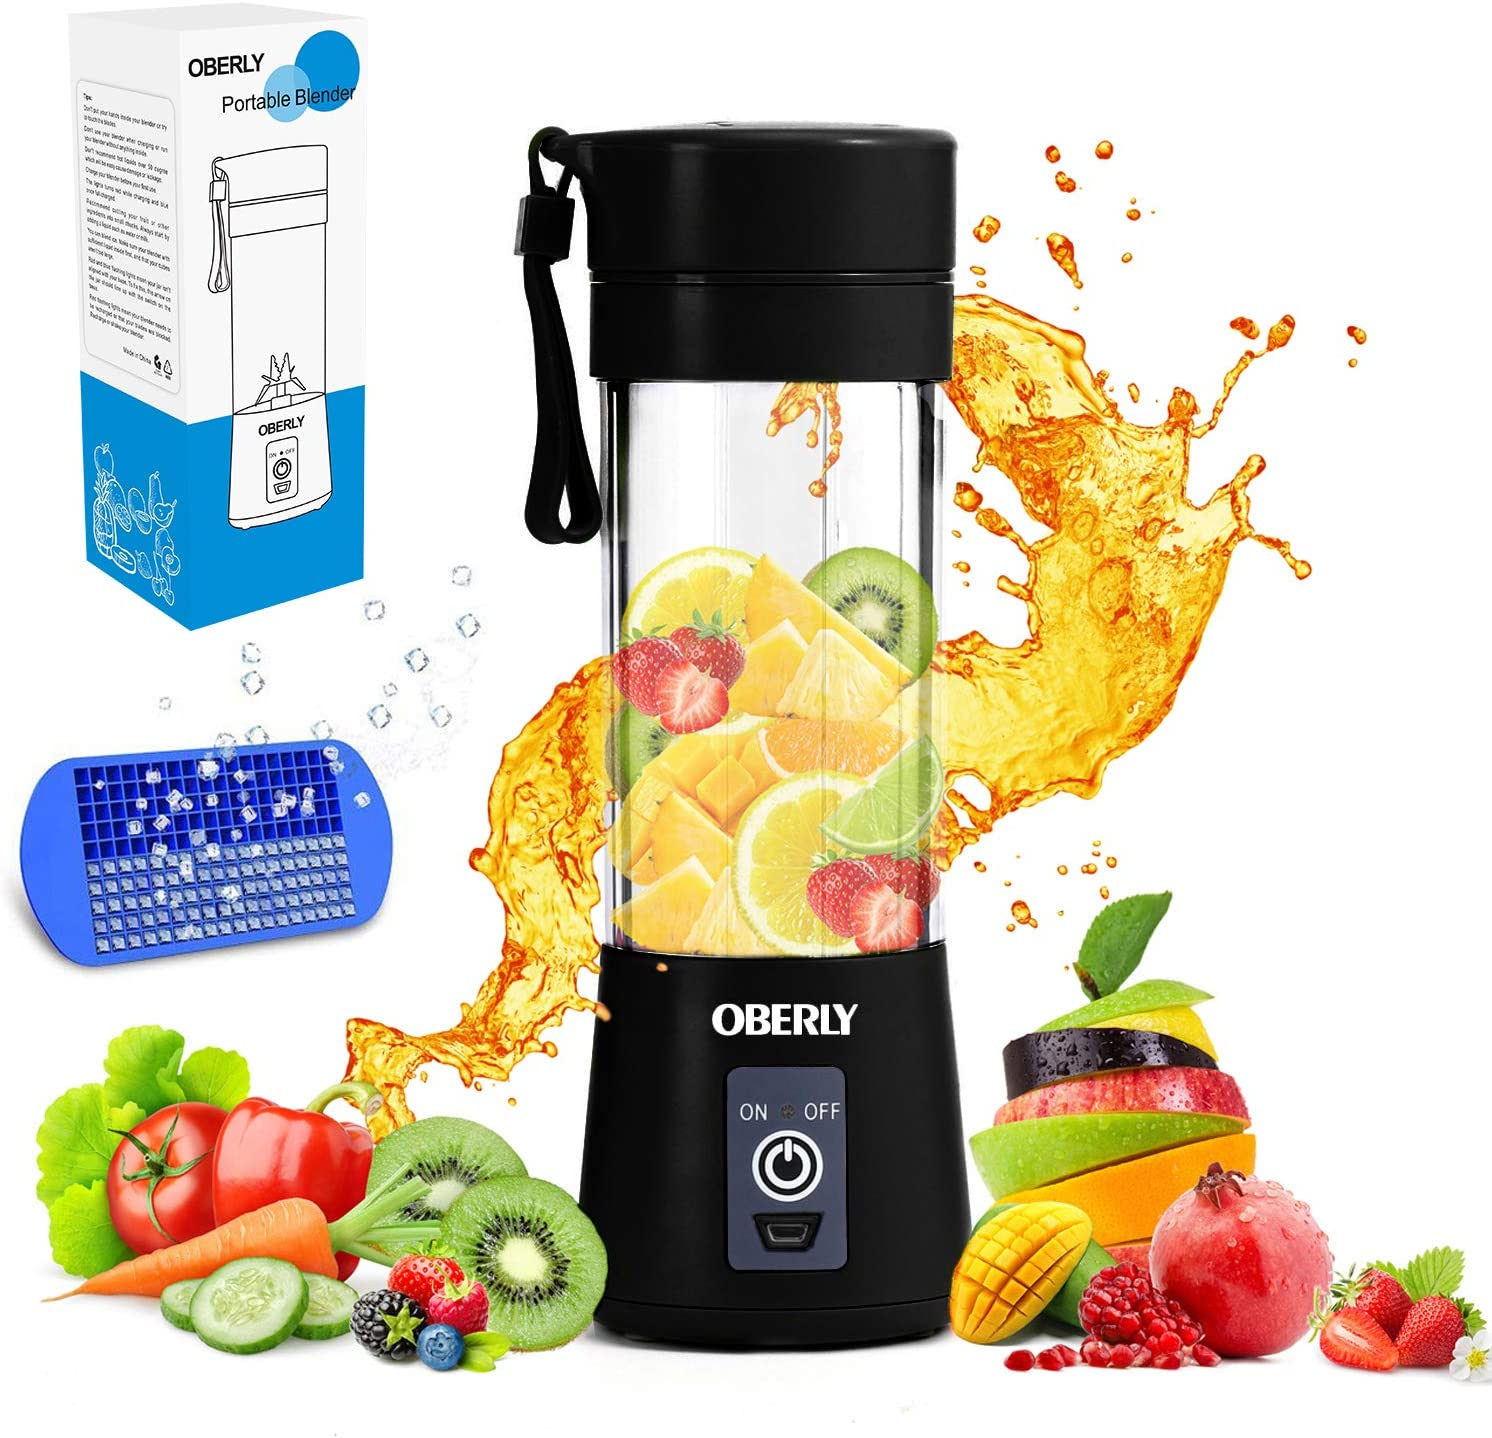 OBERLY Portable Blender, Smoothie Juicer Cup - Six Blades in 3D, 13oz Fruit Mixing Machine with 2000mAh USB Rechargeable Batteries, Ice Tray, Detachable Cup (FDA, BPA Free)